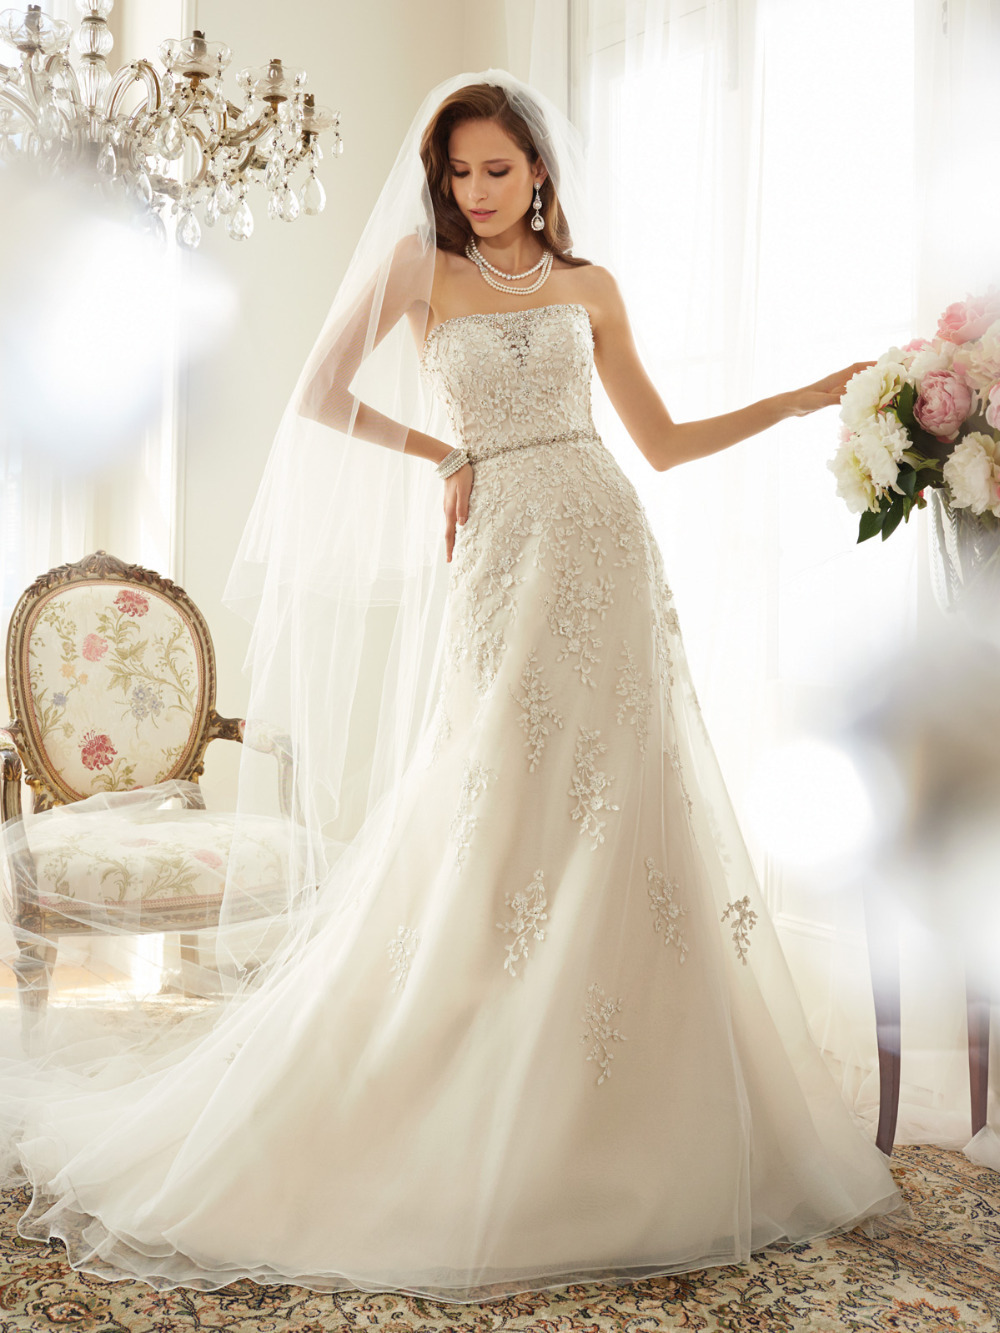 High fashion civil wedding dresses 2015 strapless lace for Organza a line wedding dress